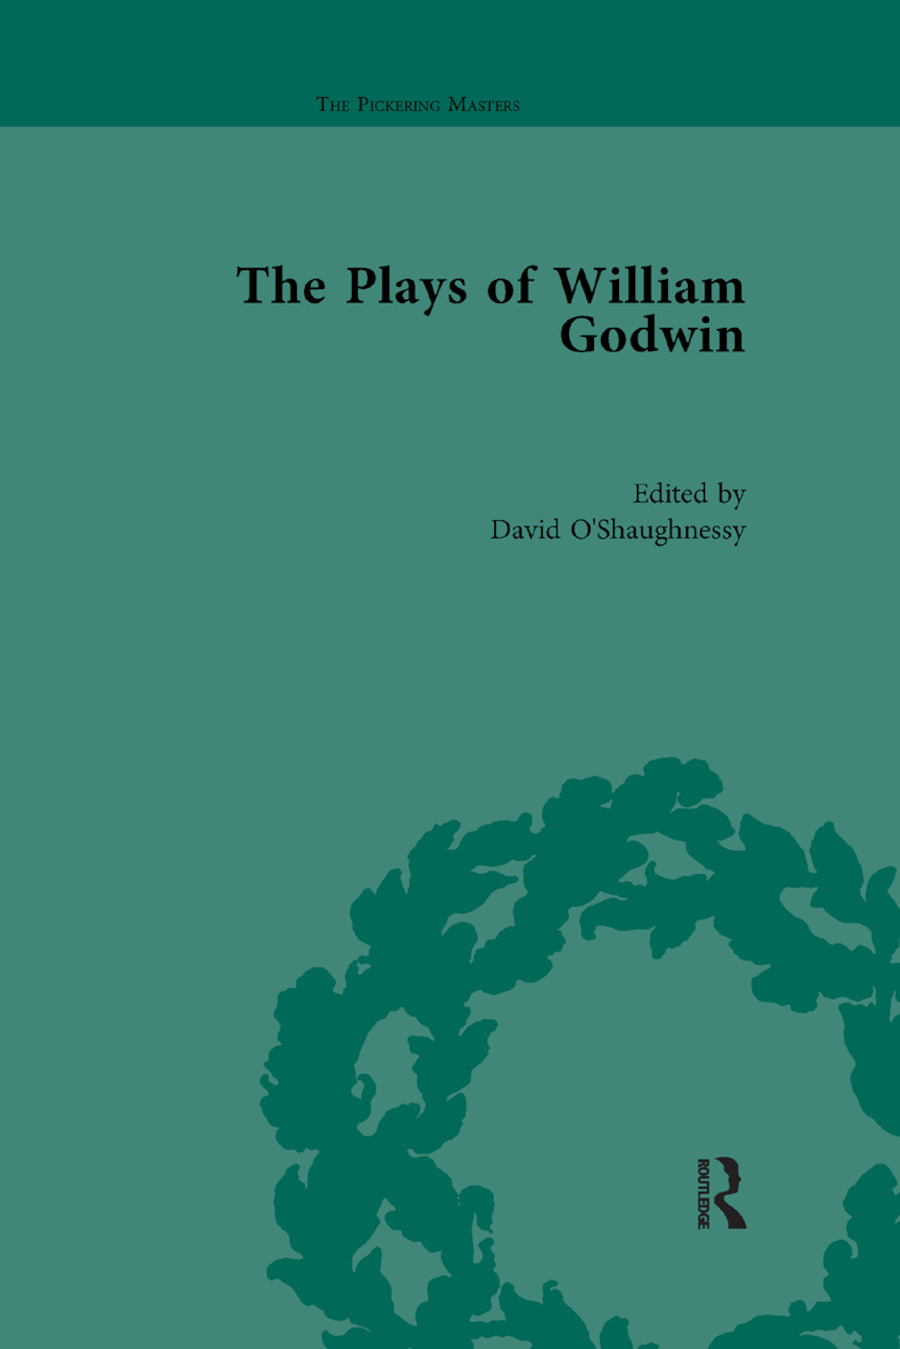 The Plays of William Godwin book cover